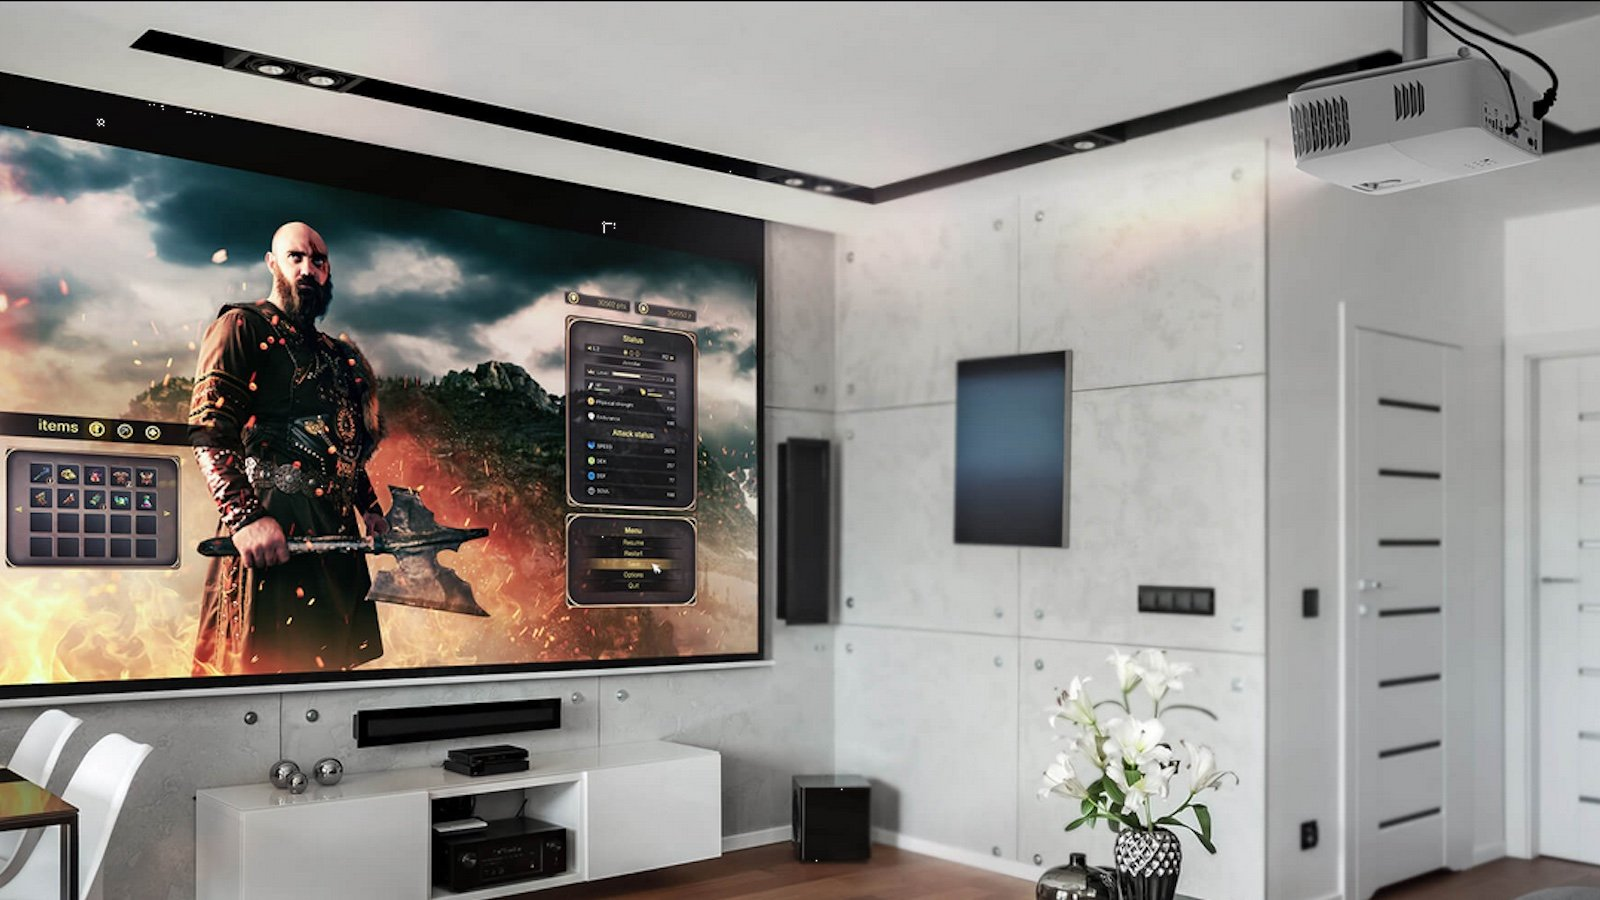 Optoma UHD50X 240 Hz Projector produces a screen up to 302.4″ in size